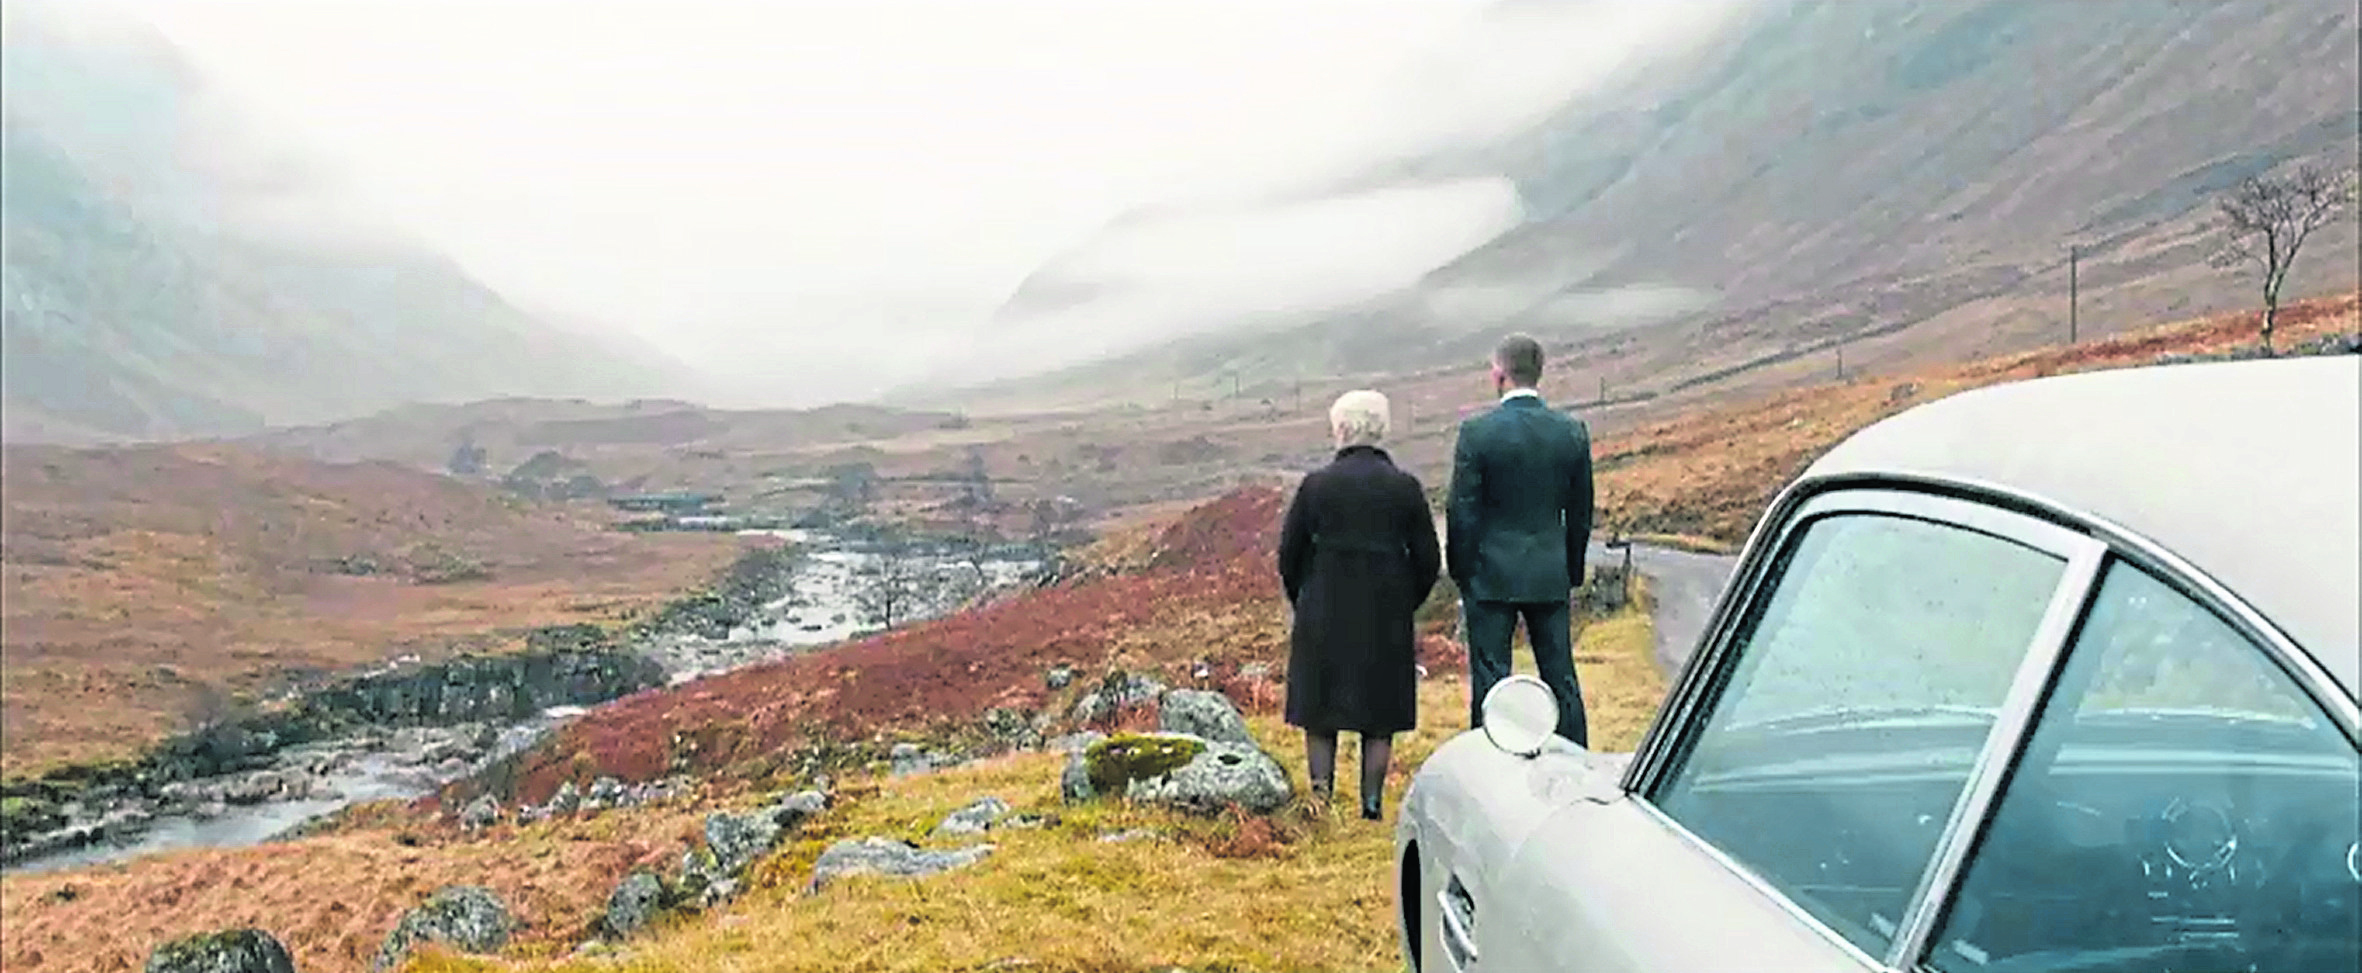 The glen was made famous by Bond film Skyfall.